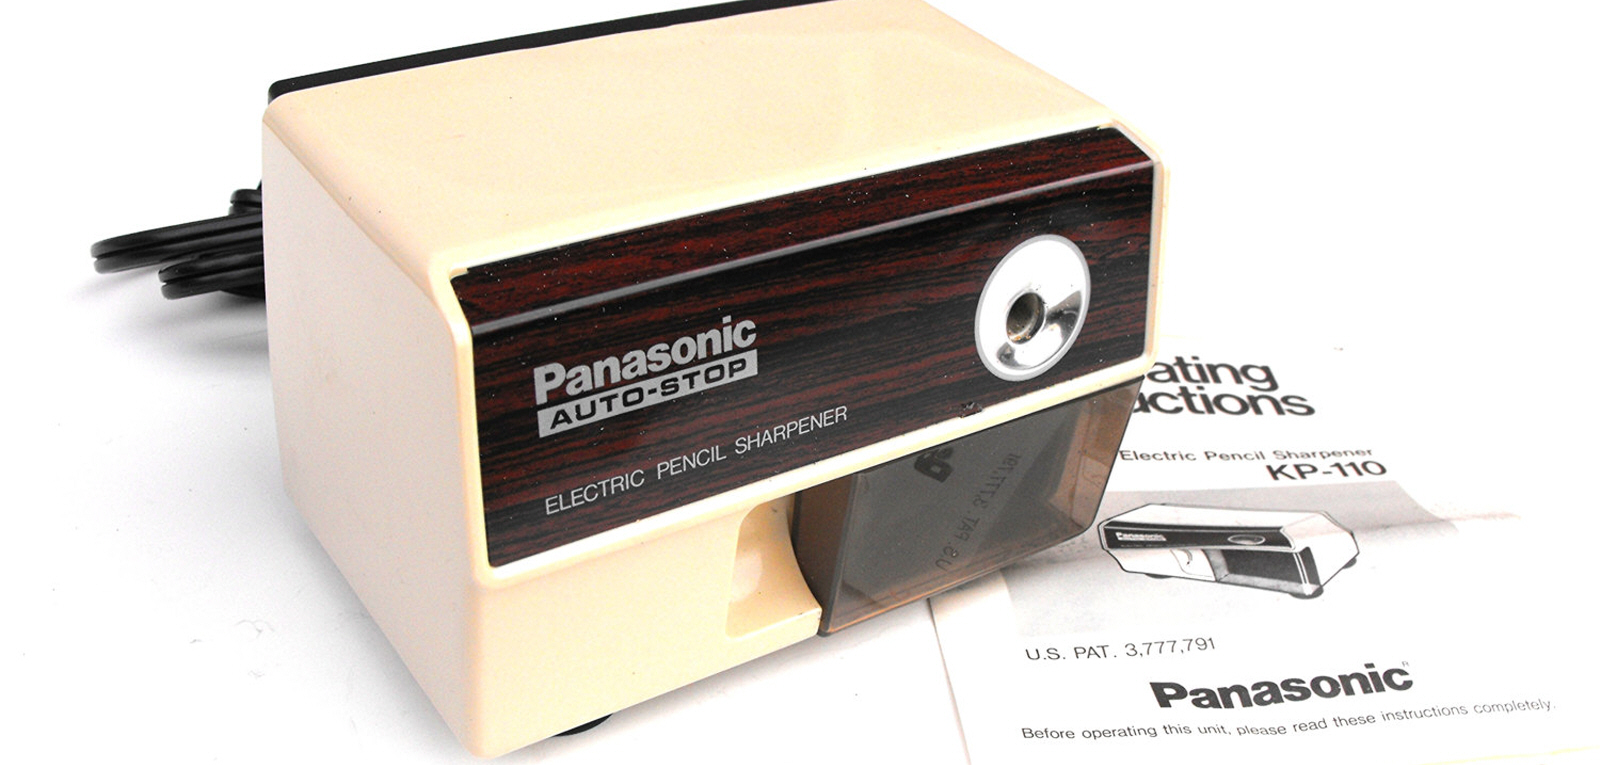 Why are Electric Pencil Sharpeners Made in the '80s Better than New Ones? -  Core77